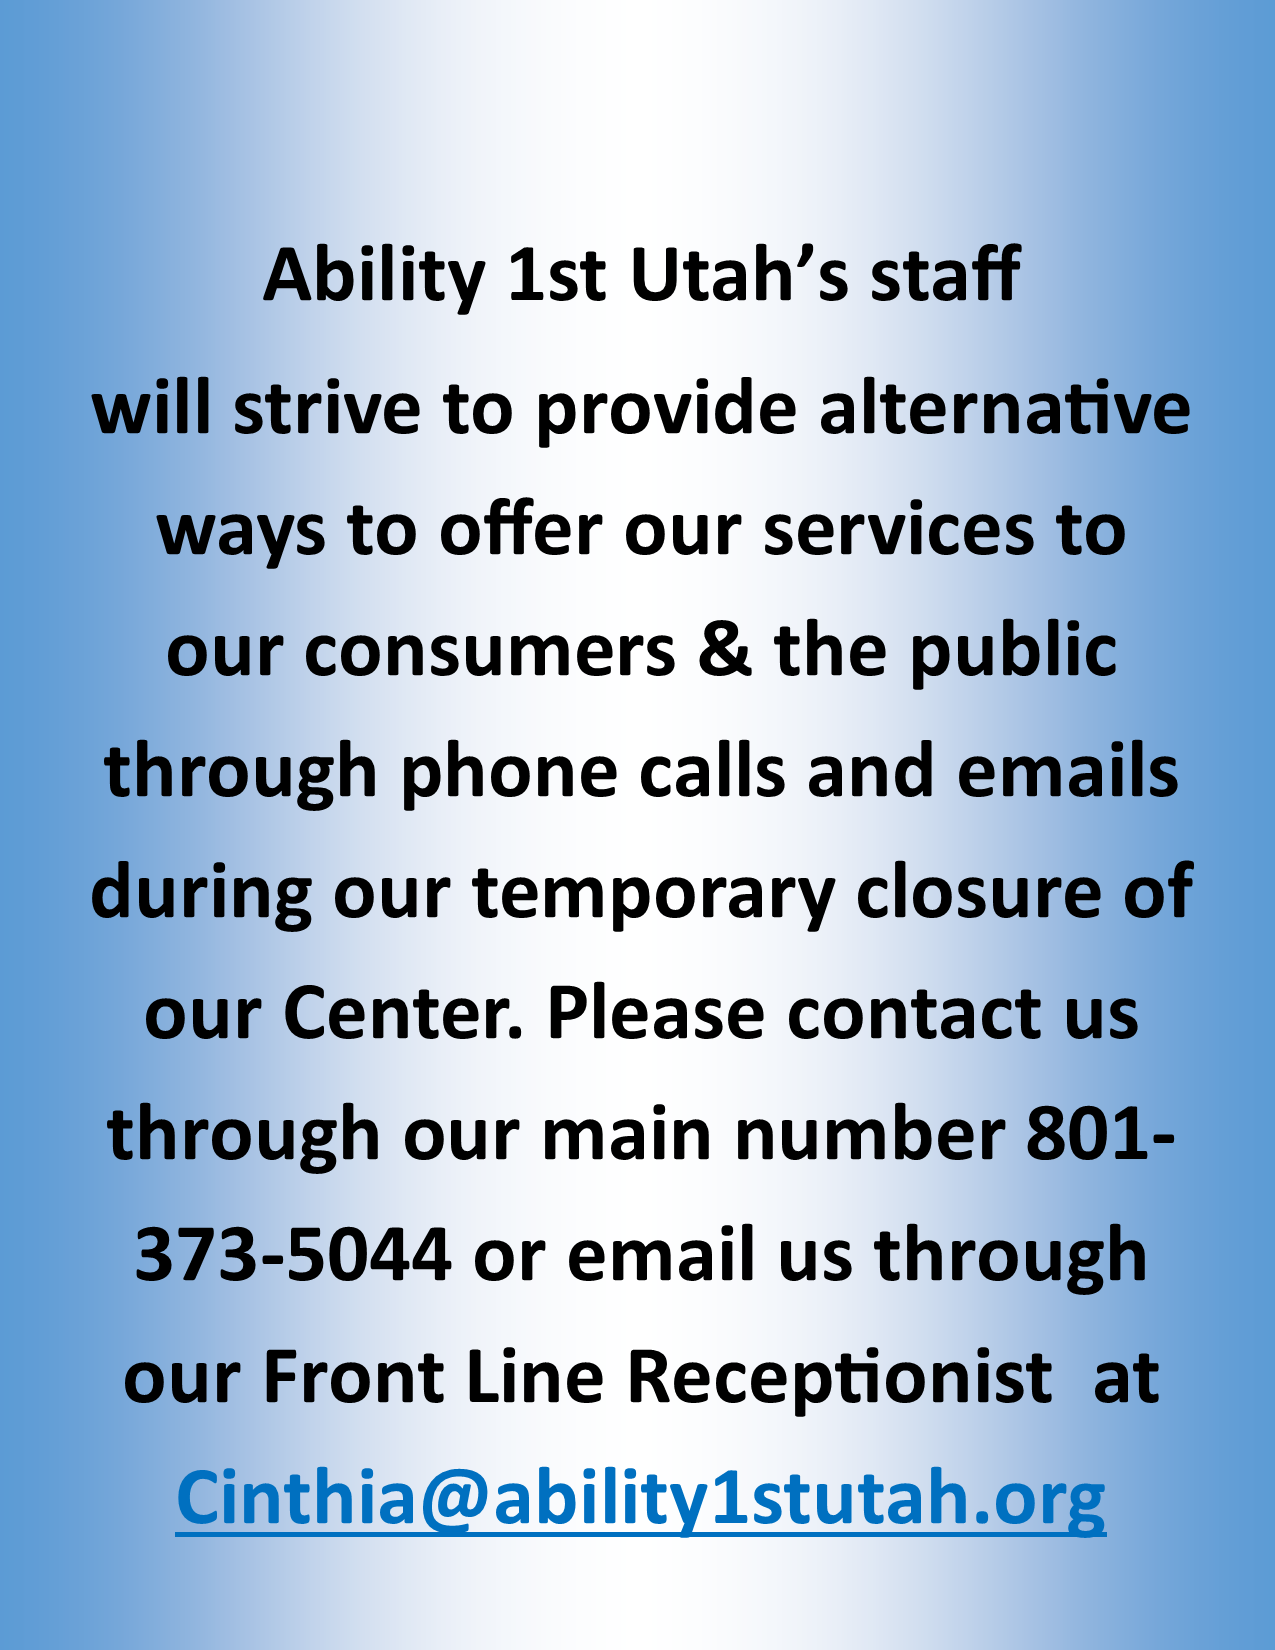 Ability 1st Utah will strive to provide alternative ways to offer our services to our consumers and the public through phone calls and emails during the temporary closure of our Center. Please contact us through our main number 801 373 5044 or email us through our front line receptionist at cinthia@ability1stutah.org